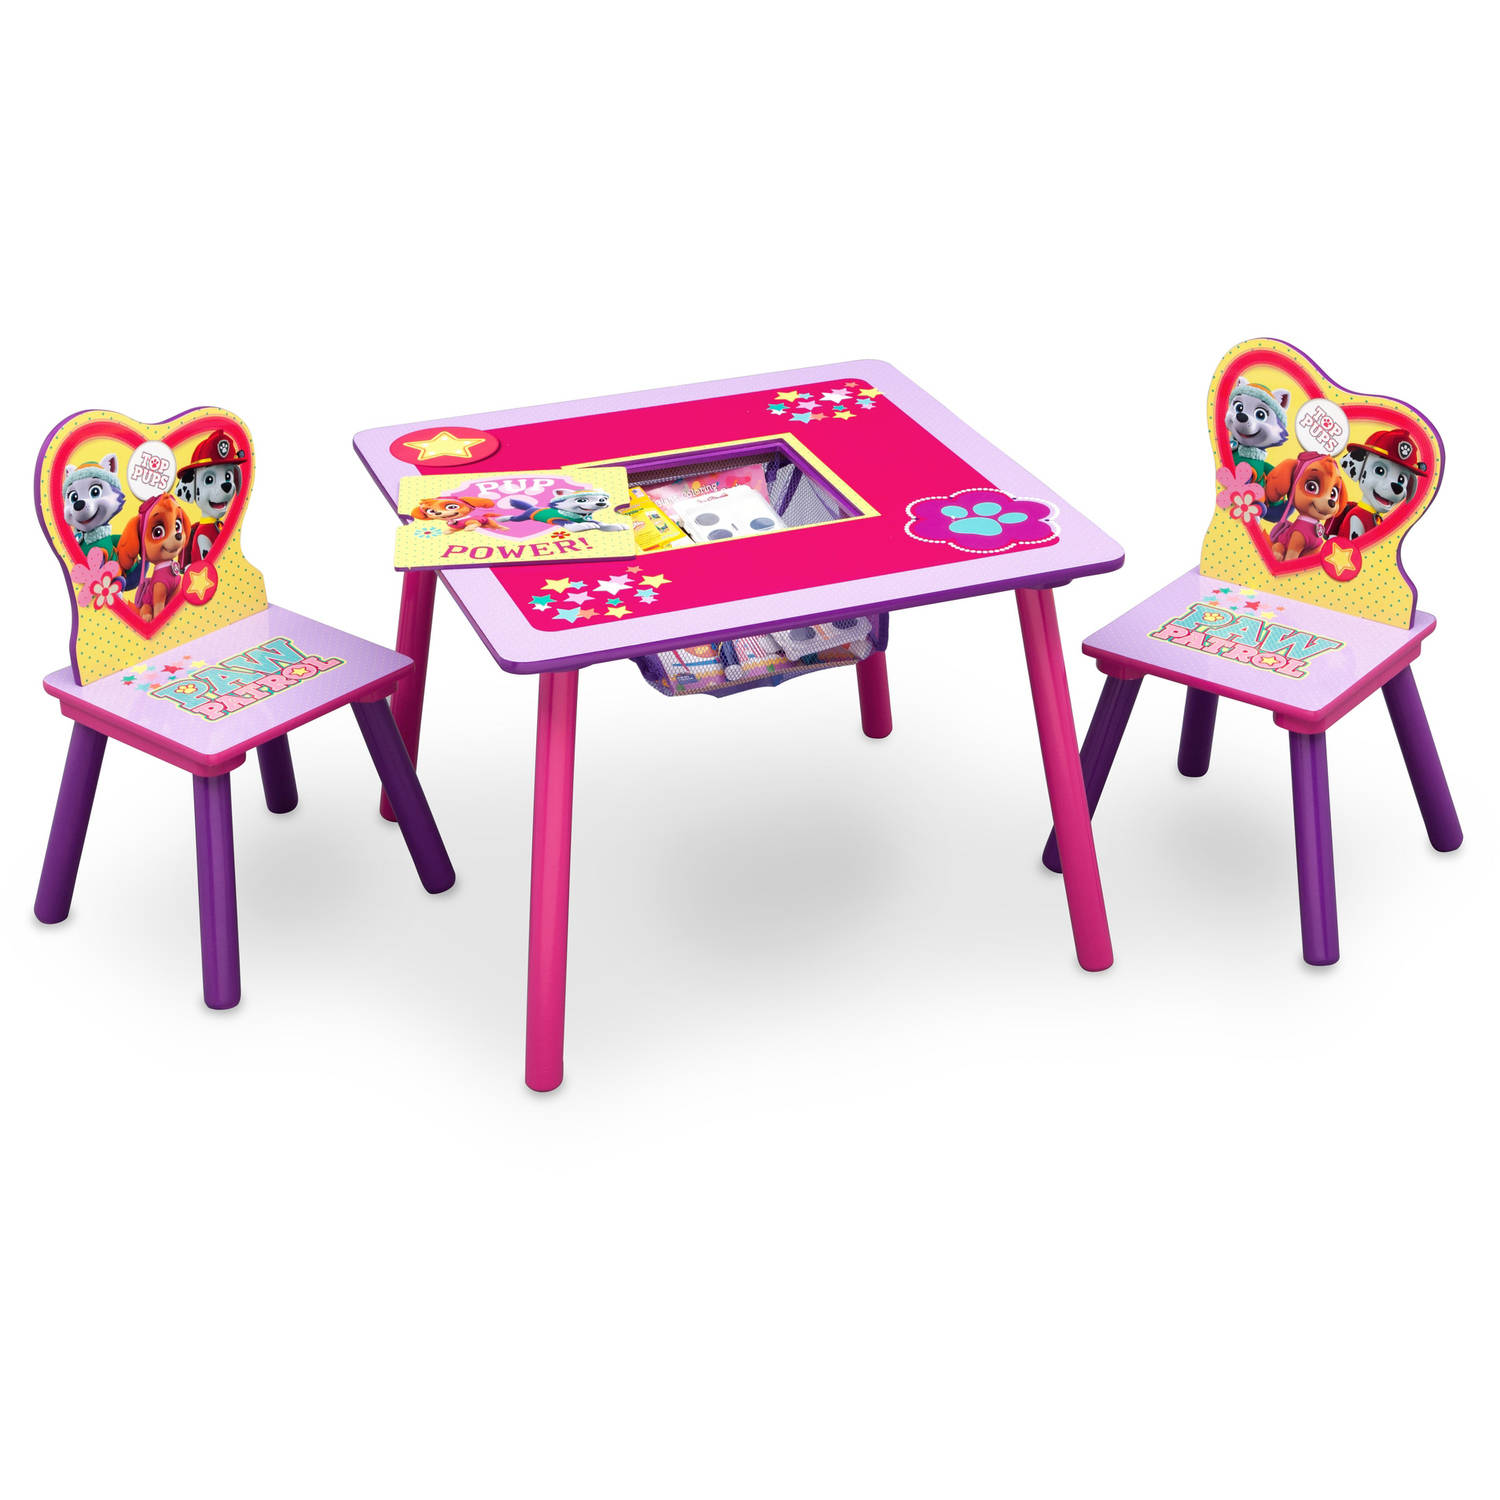 3 piece table and chair set teak chairs nick jr paw patrol skye everest with details about storage